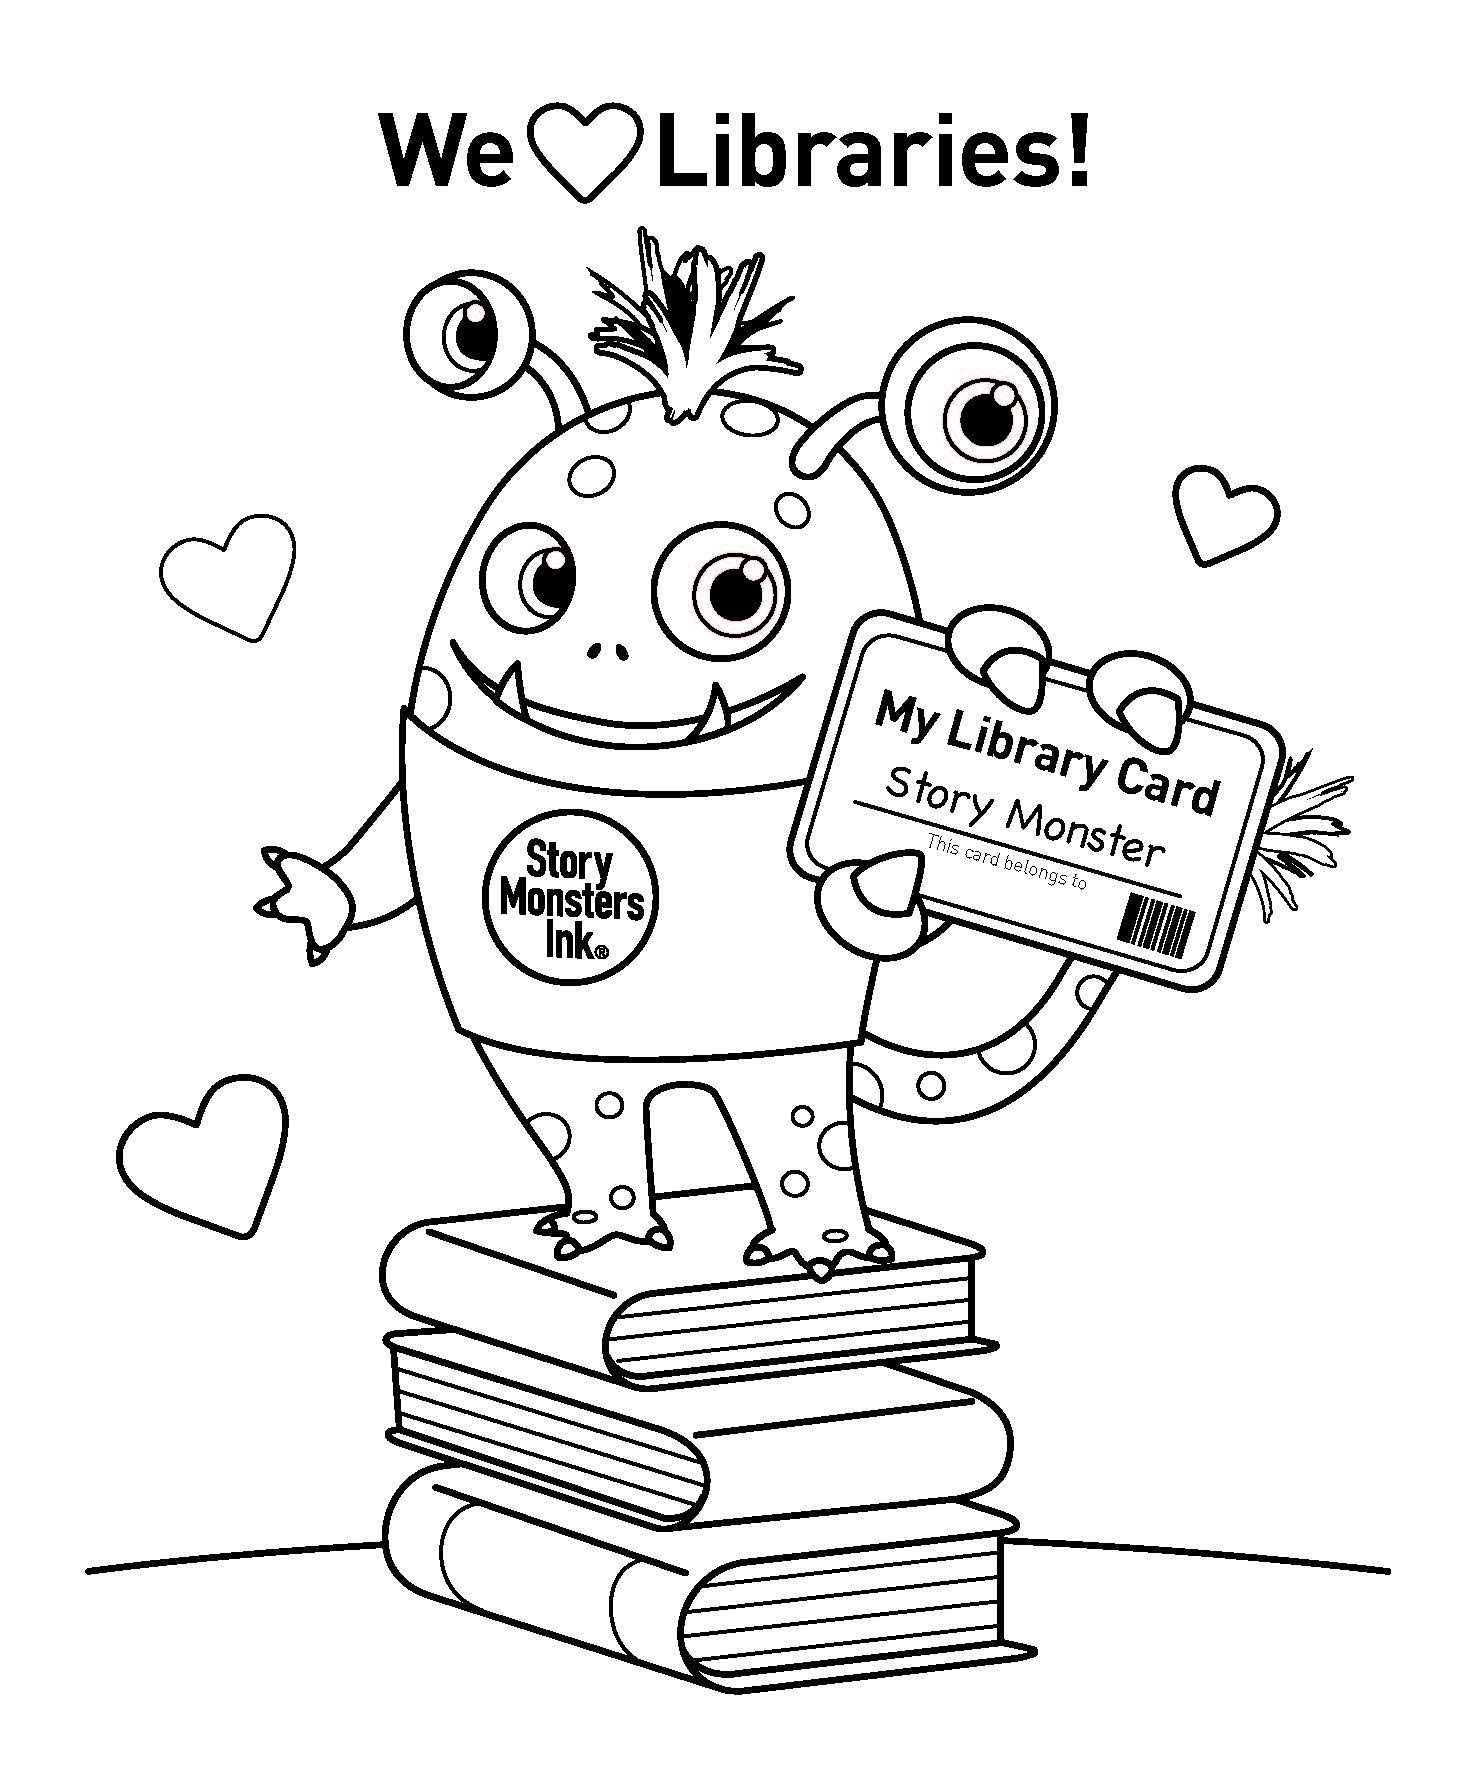 Story Monsters Coloring Contest — Story Monsters LLC